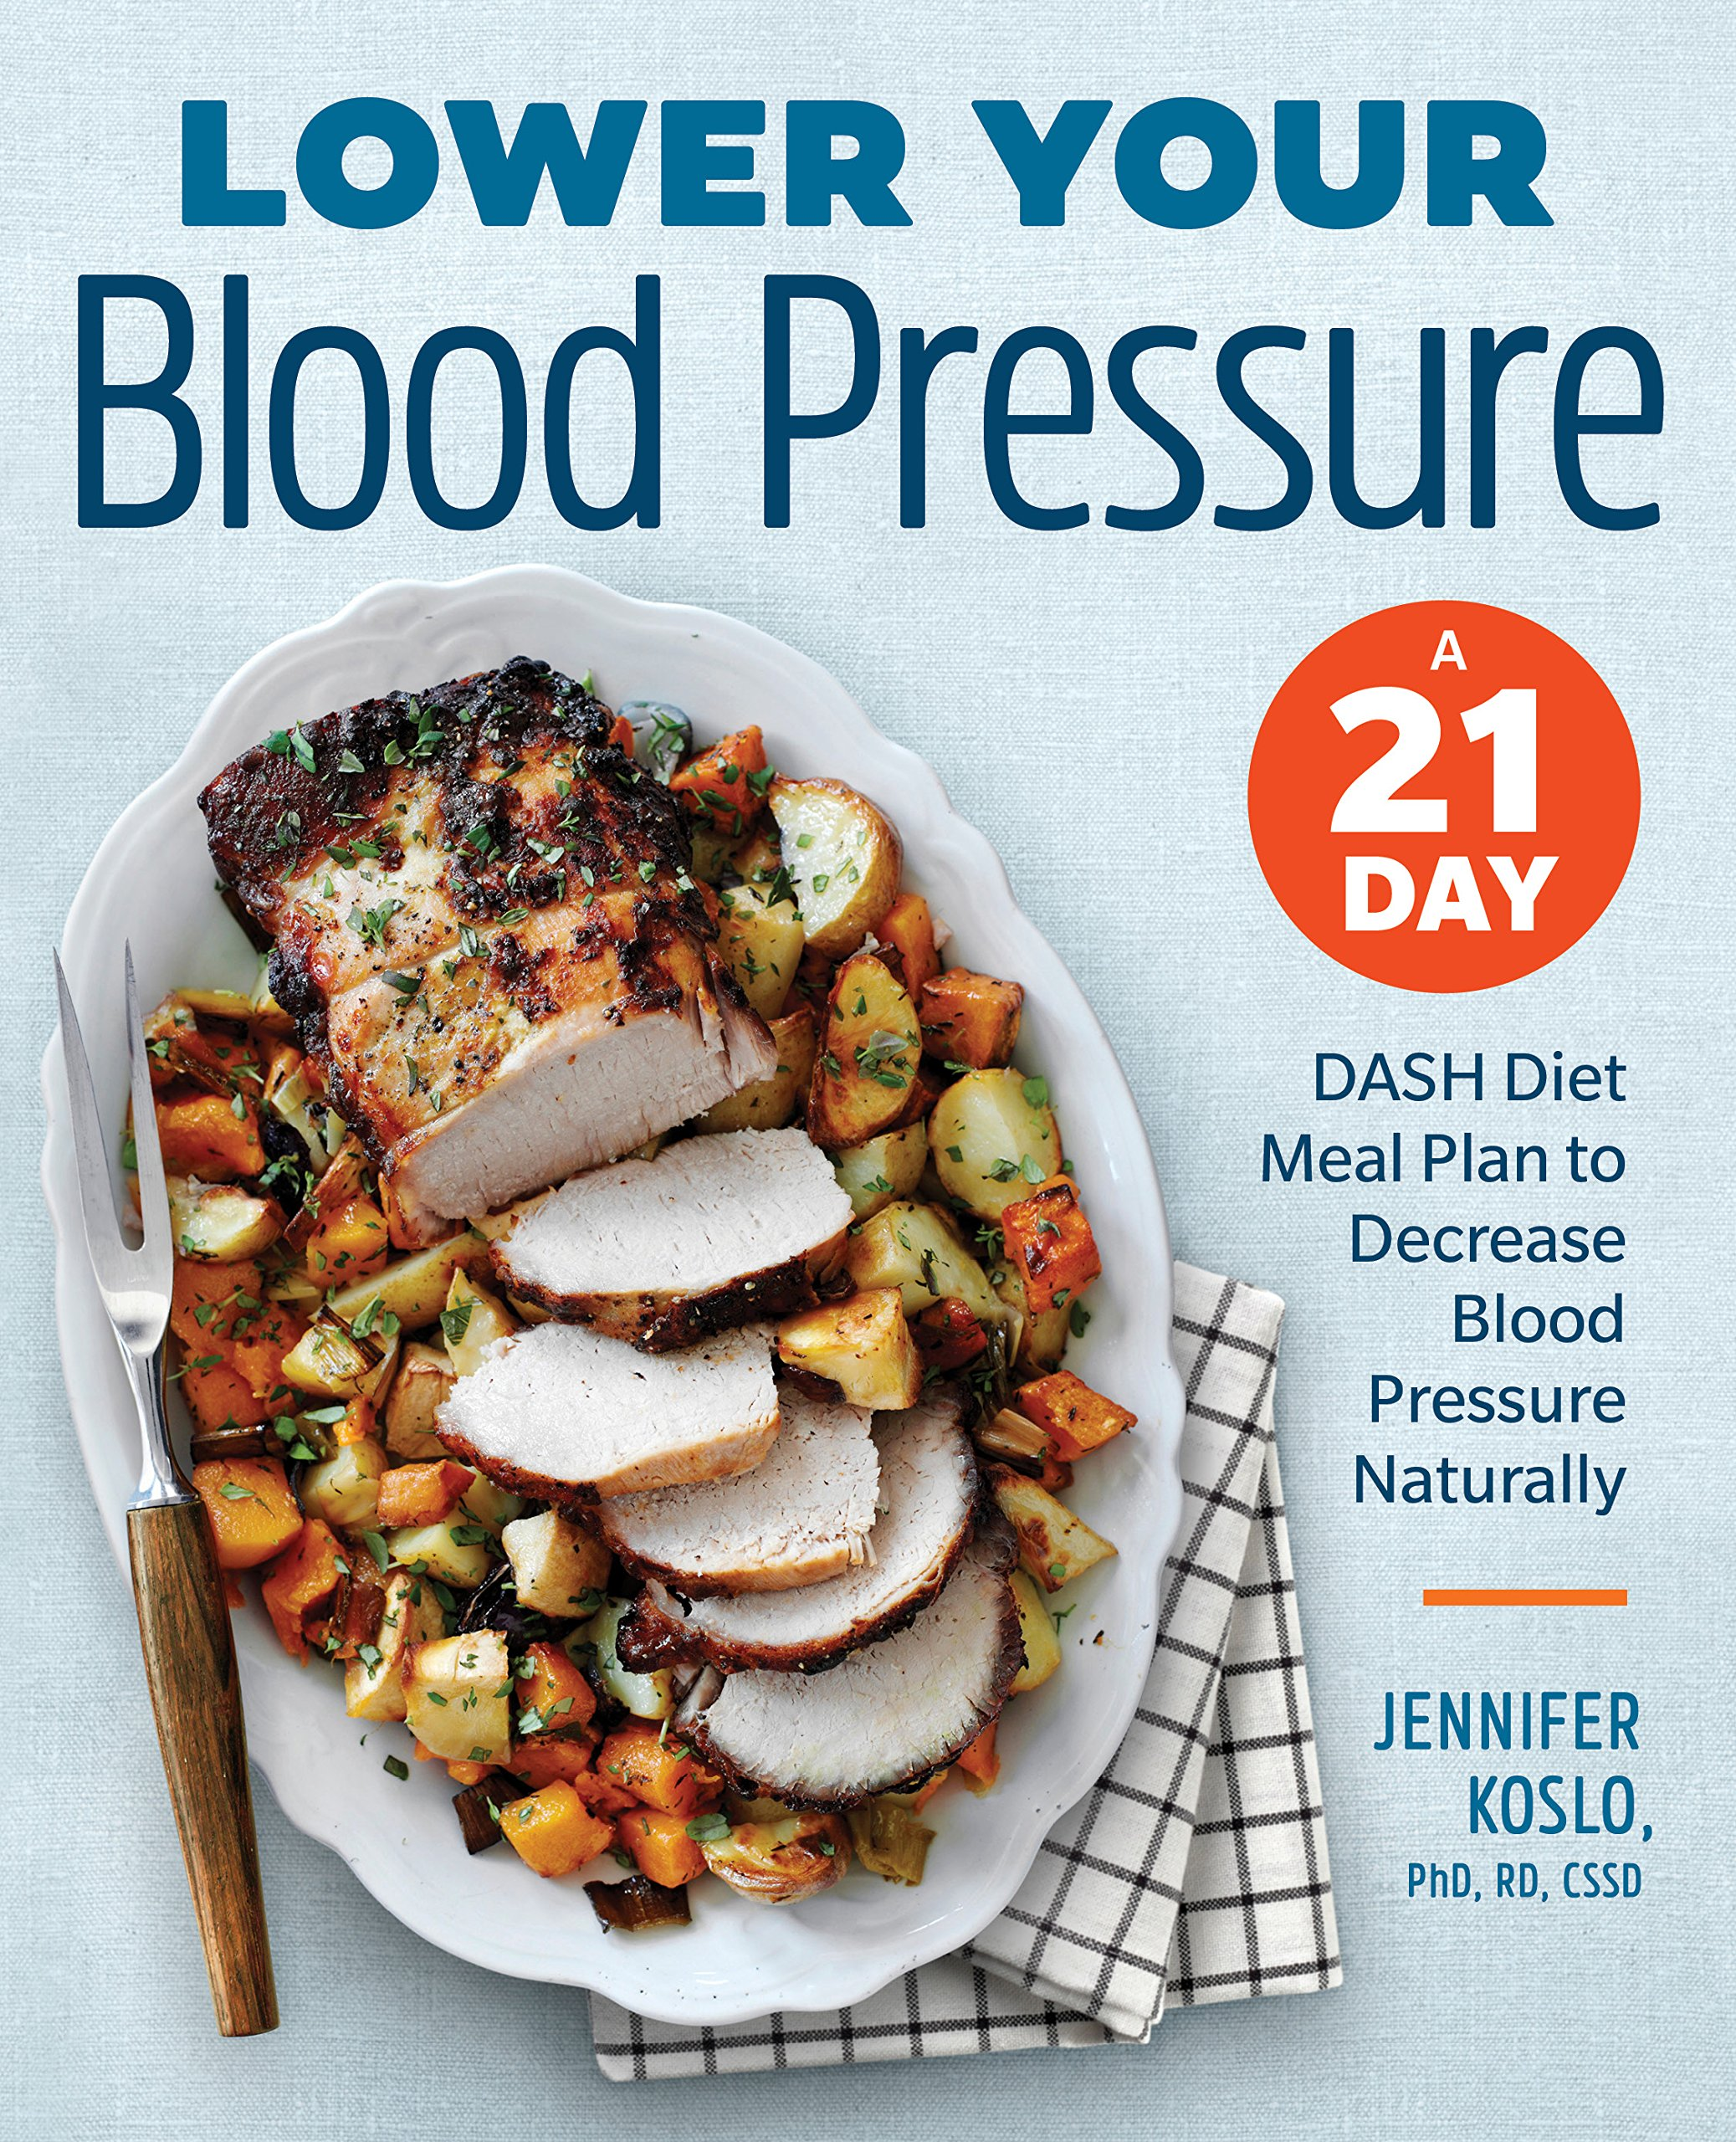 Lower your blood pressure a 21 day dash diet meal plan to decrease lower your blood pressure a 21 day dash diet meal plan to decrease blood pressure naturally jennifer koslo phd rdn cssd 9781939754226 amazon books forumfinder Choice Image